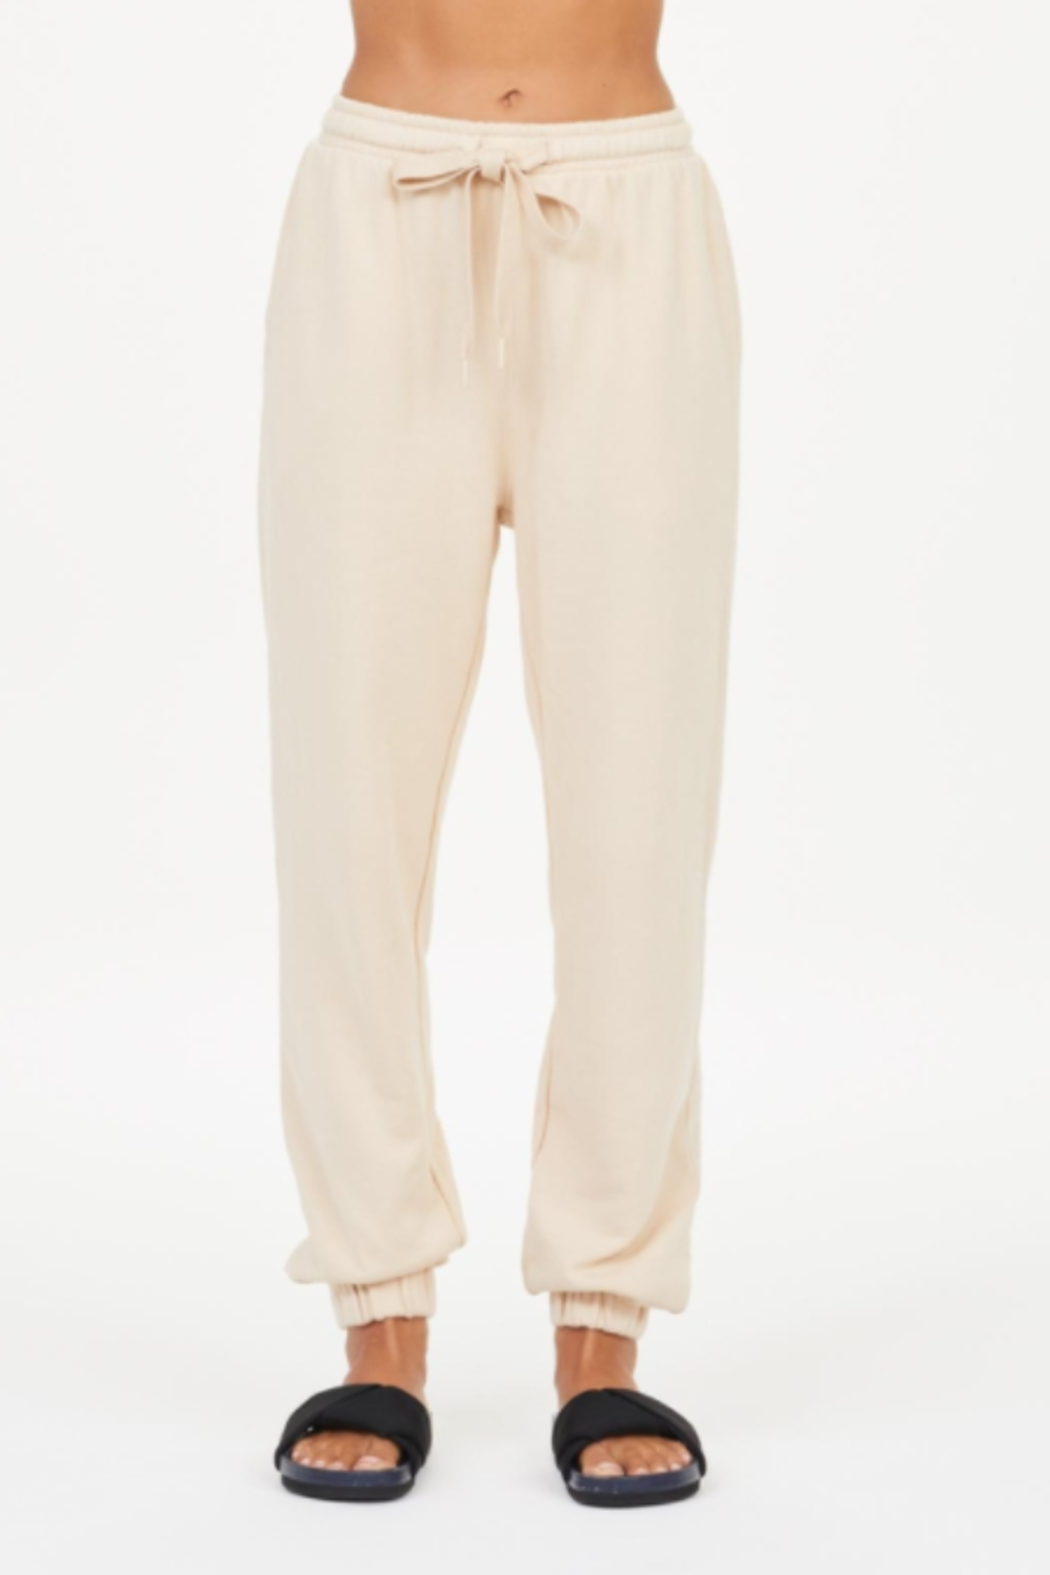 Upside Coveted Cream Joggers - Main Image